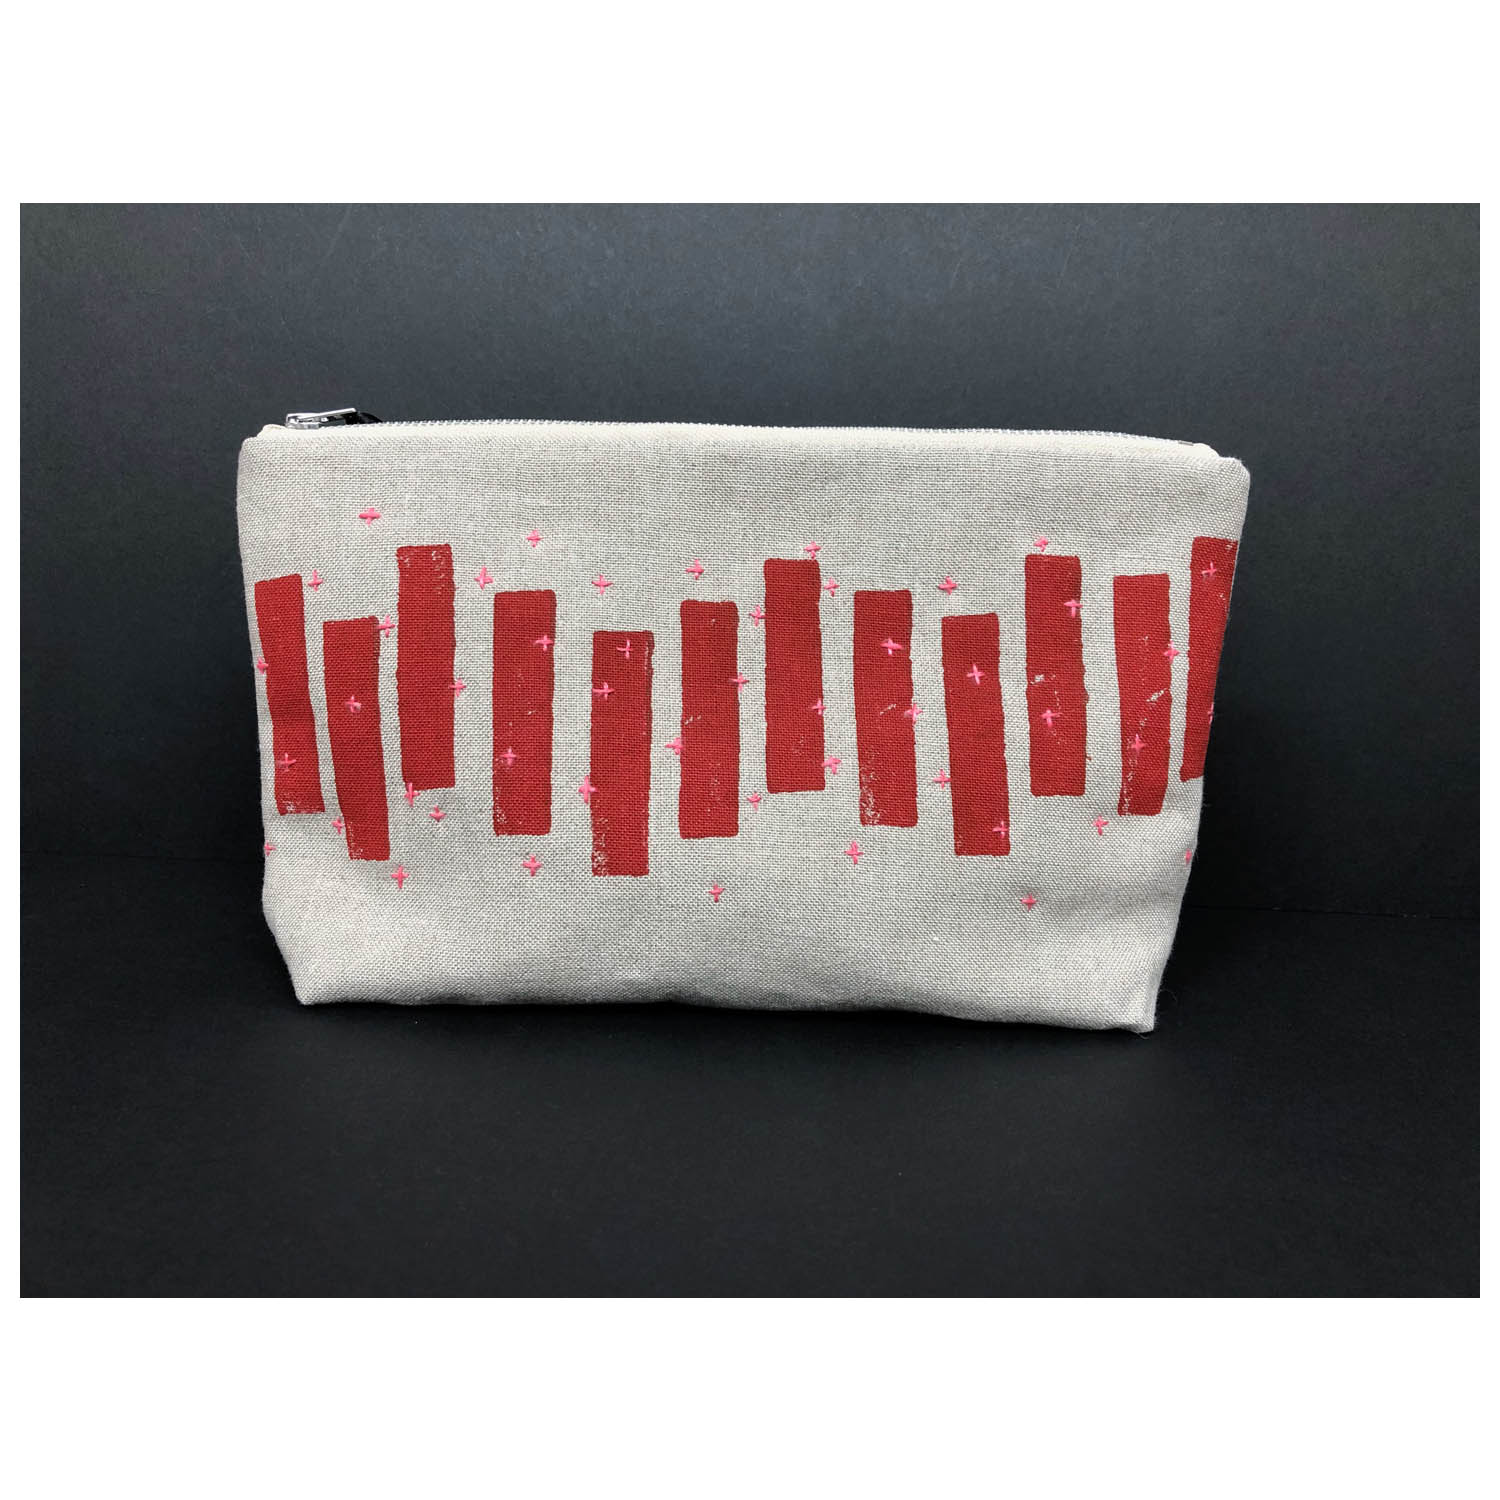 Colette Moscrop Red Blocks Embroidered Clutch Linen Textile Ink Cotton Linen Thread 275x160x55mm £48